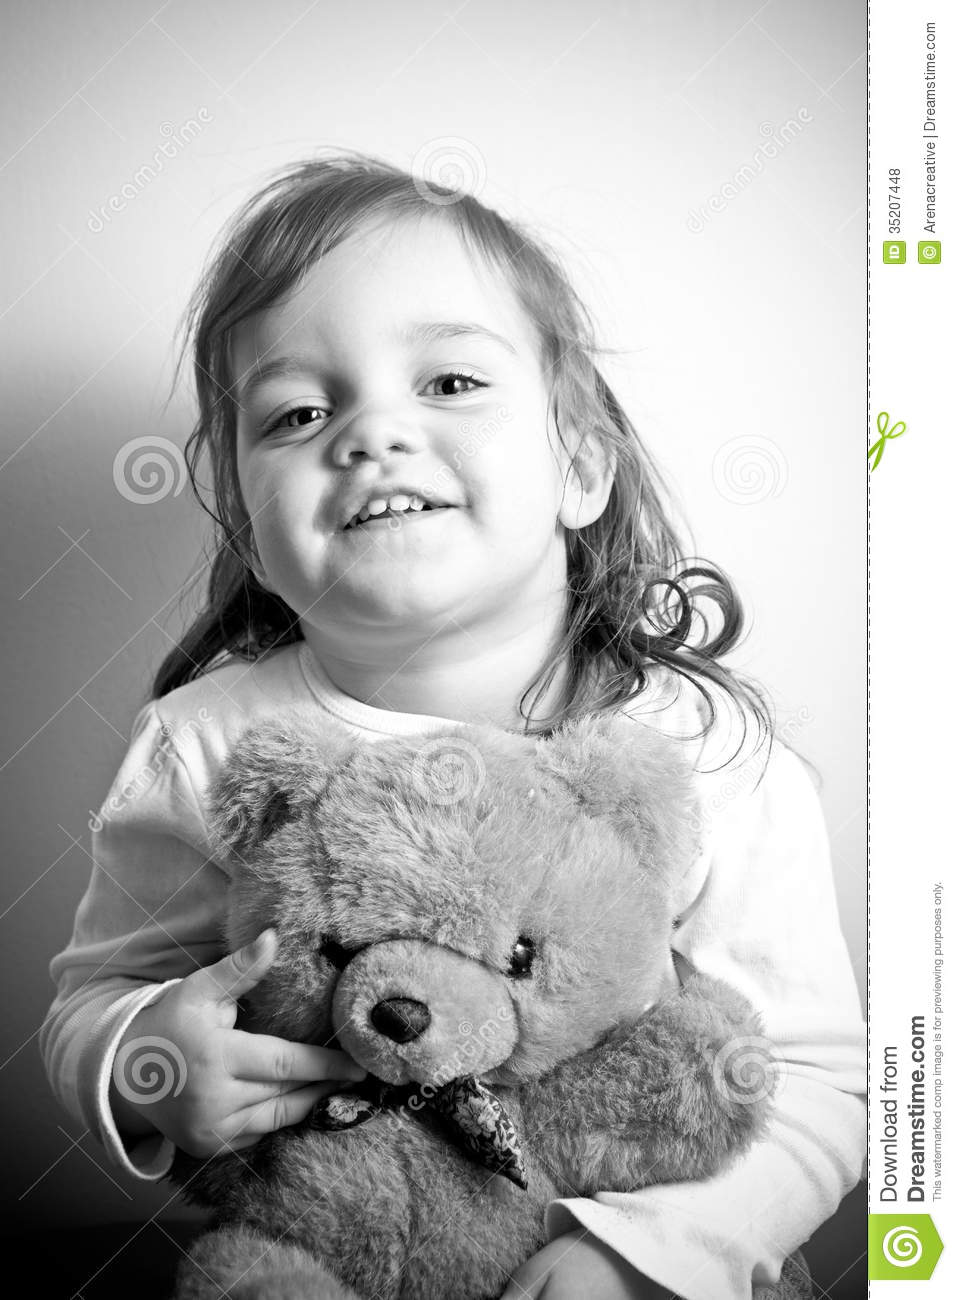 Girl With Her Teddy Bear Royalty Free Stock Photos - Image ...Little Girl With Teddy Bear Black And White